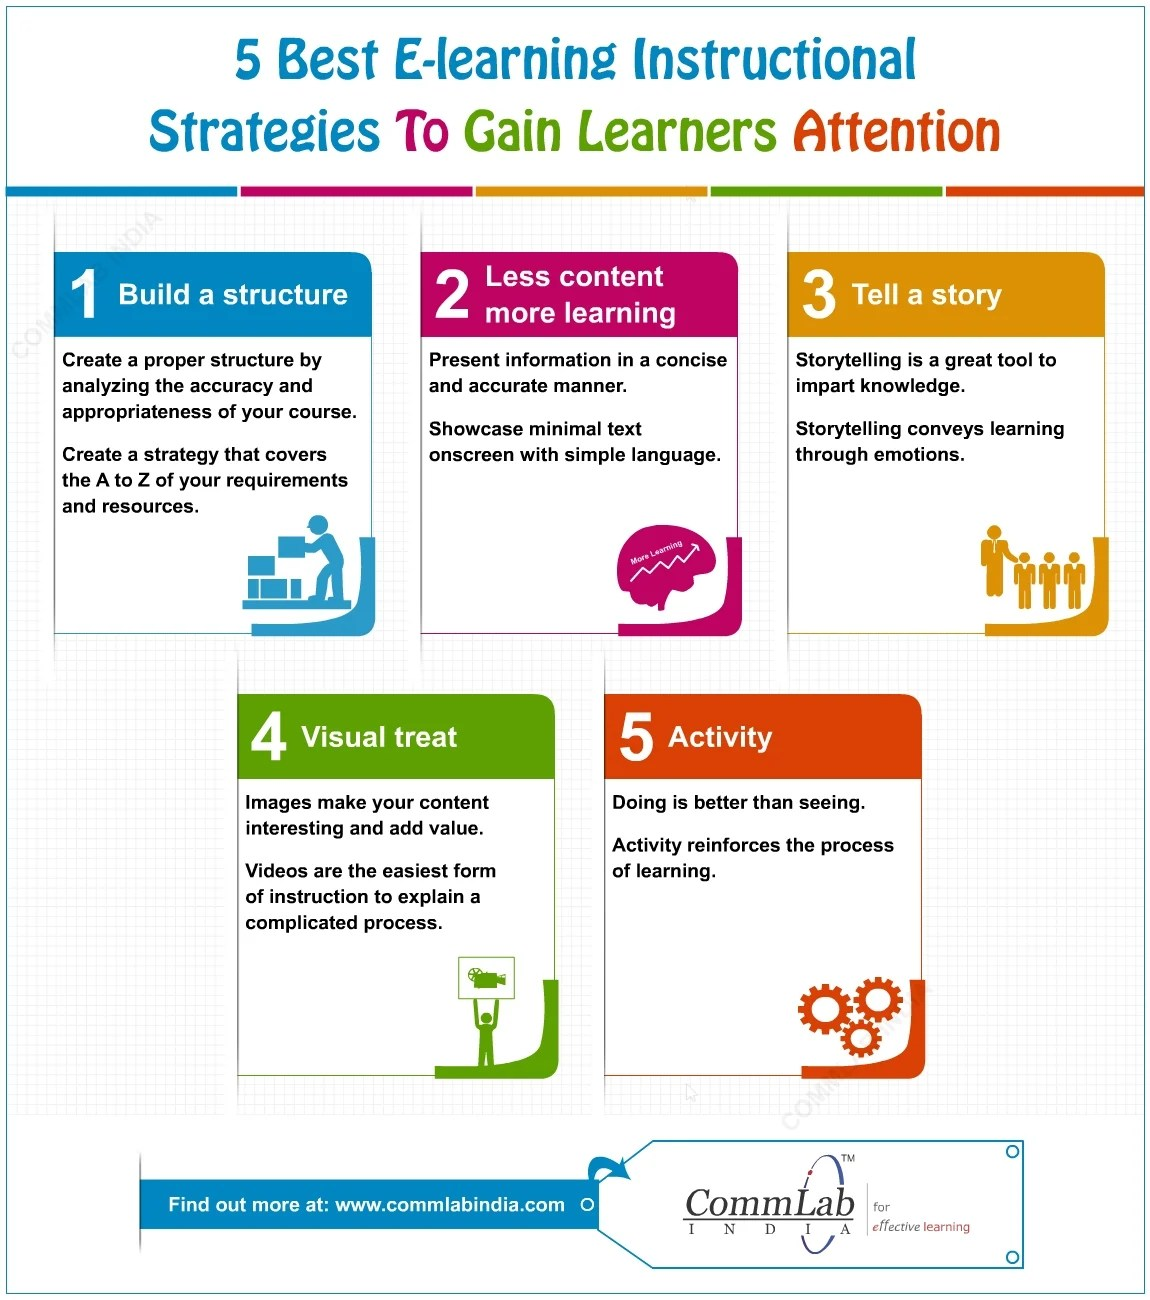 5 Proven Instructional Strategies To Gain Learners